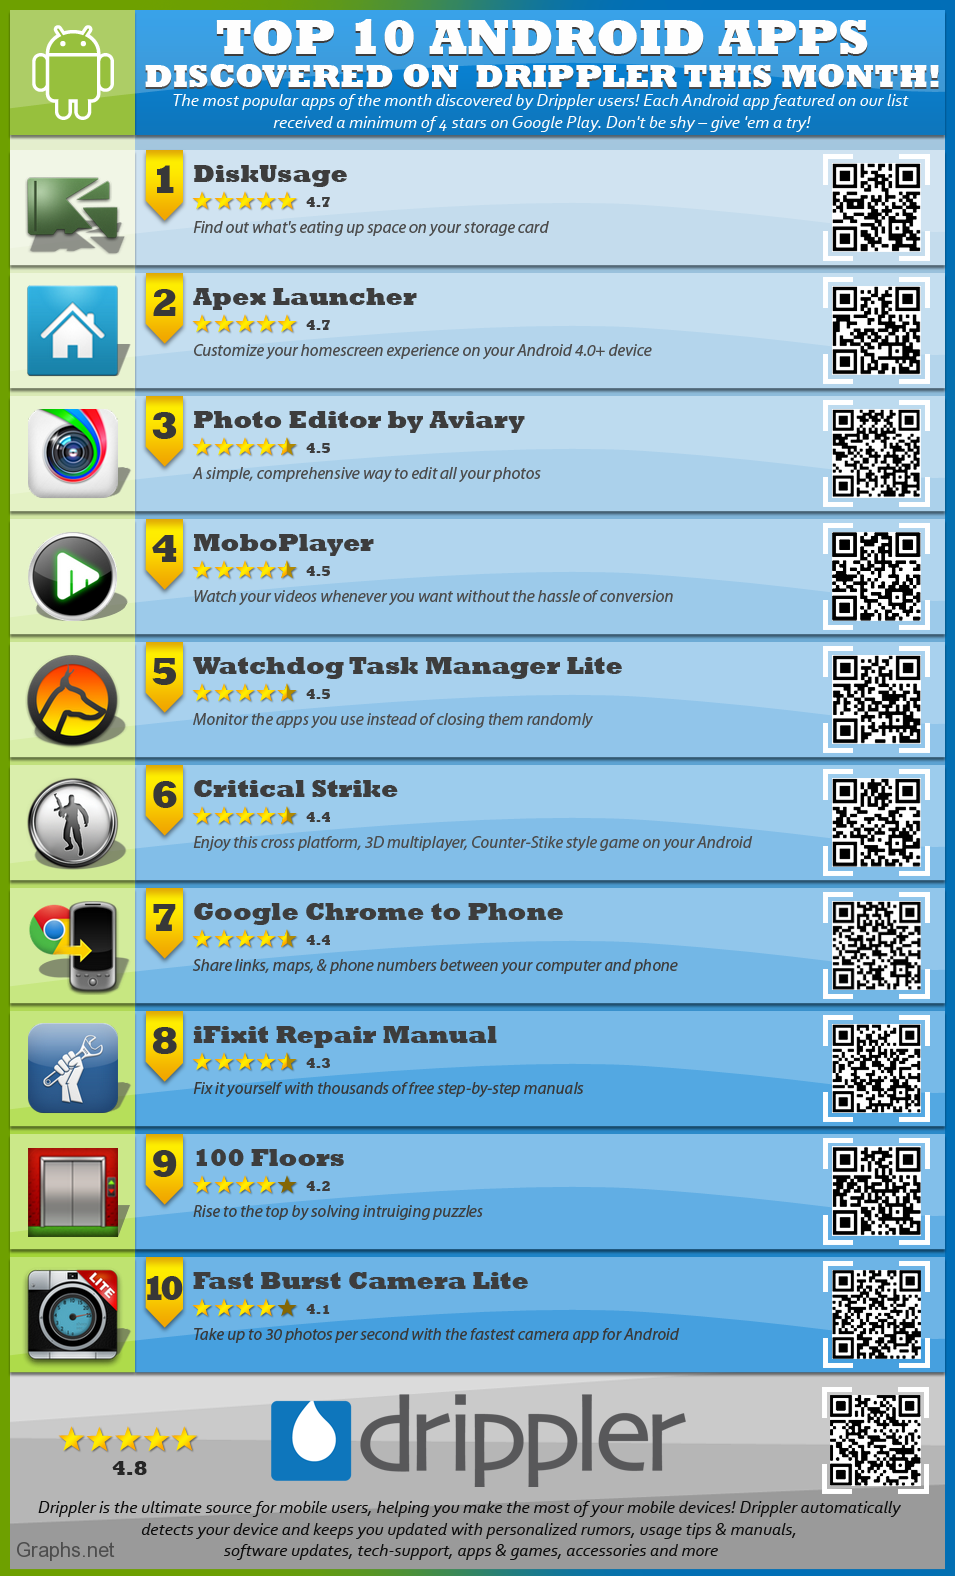 Drippler's Top 10 Apps For Android